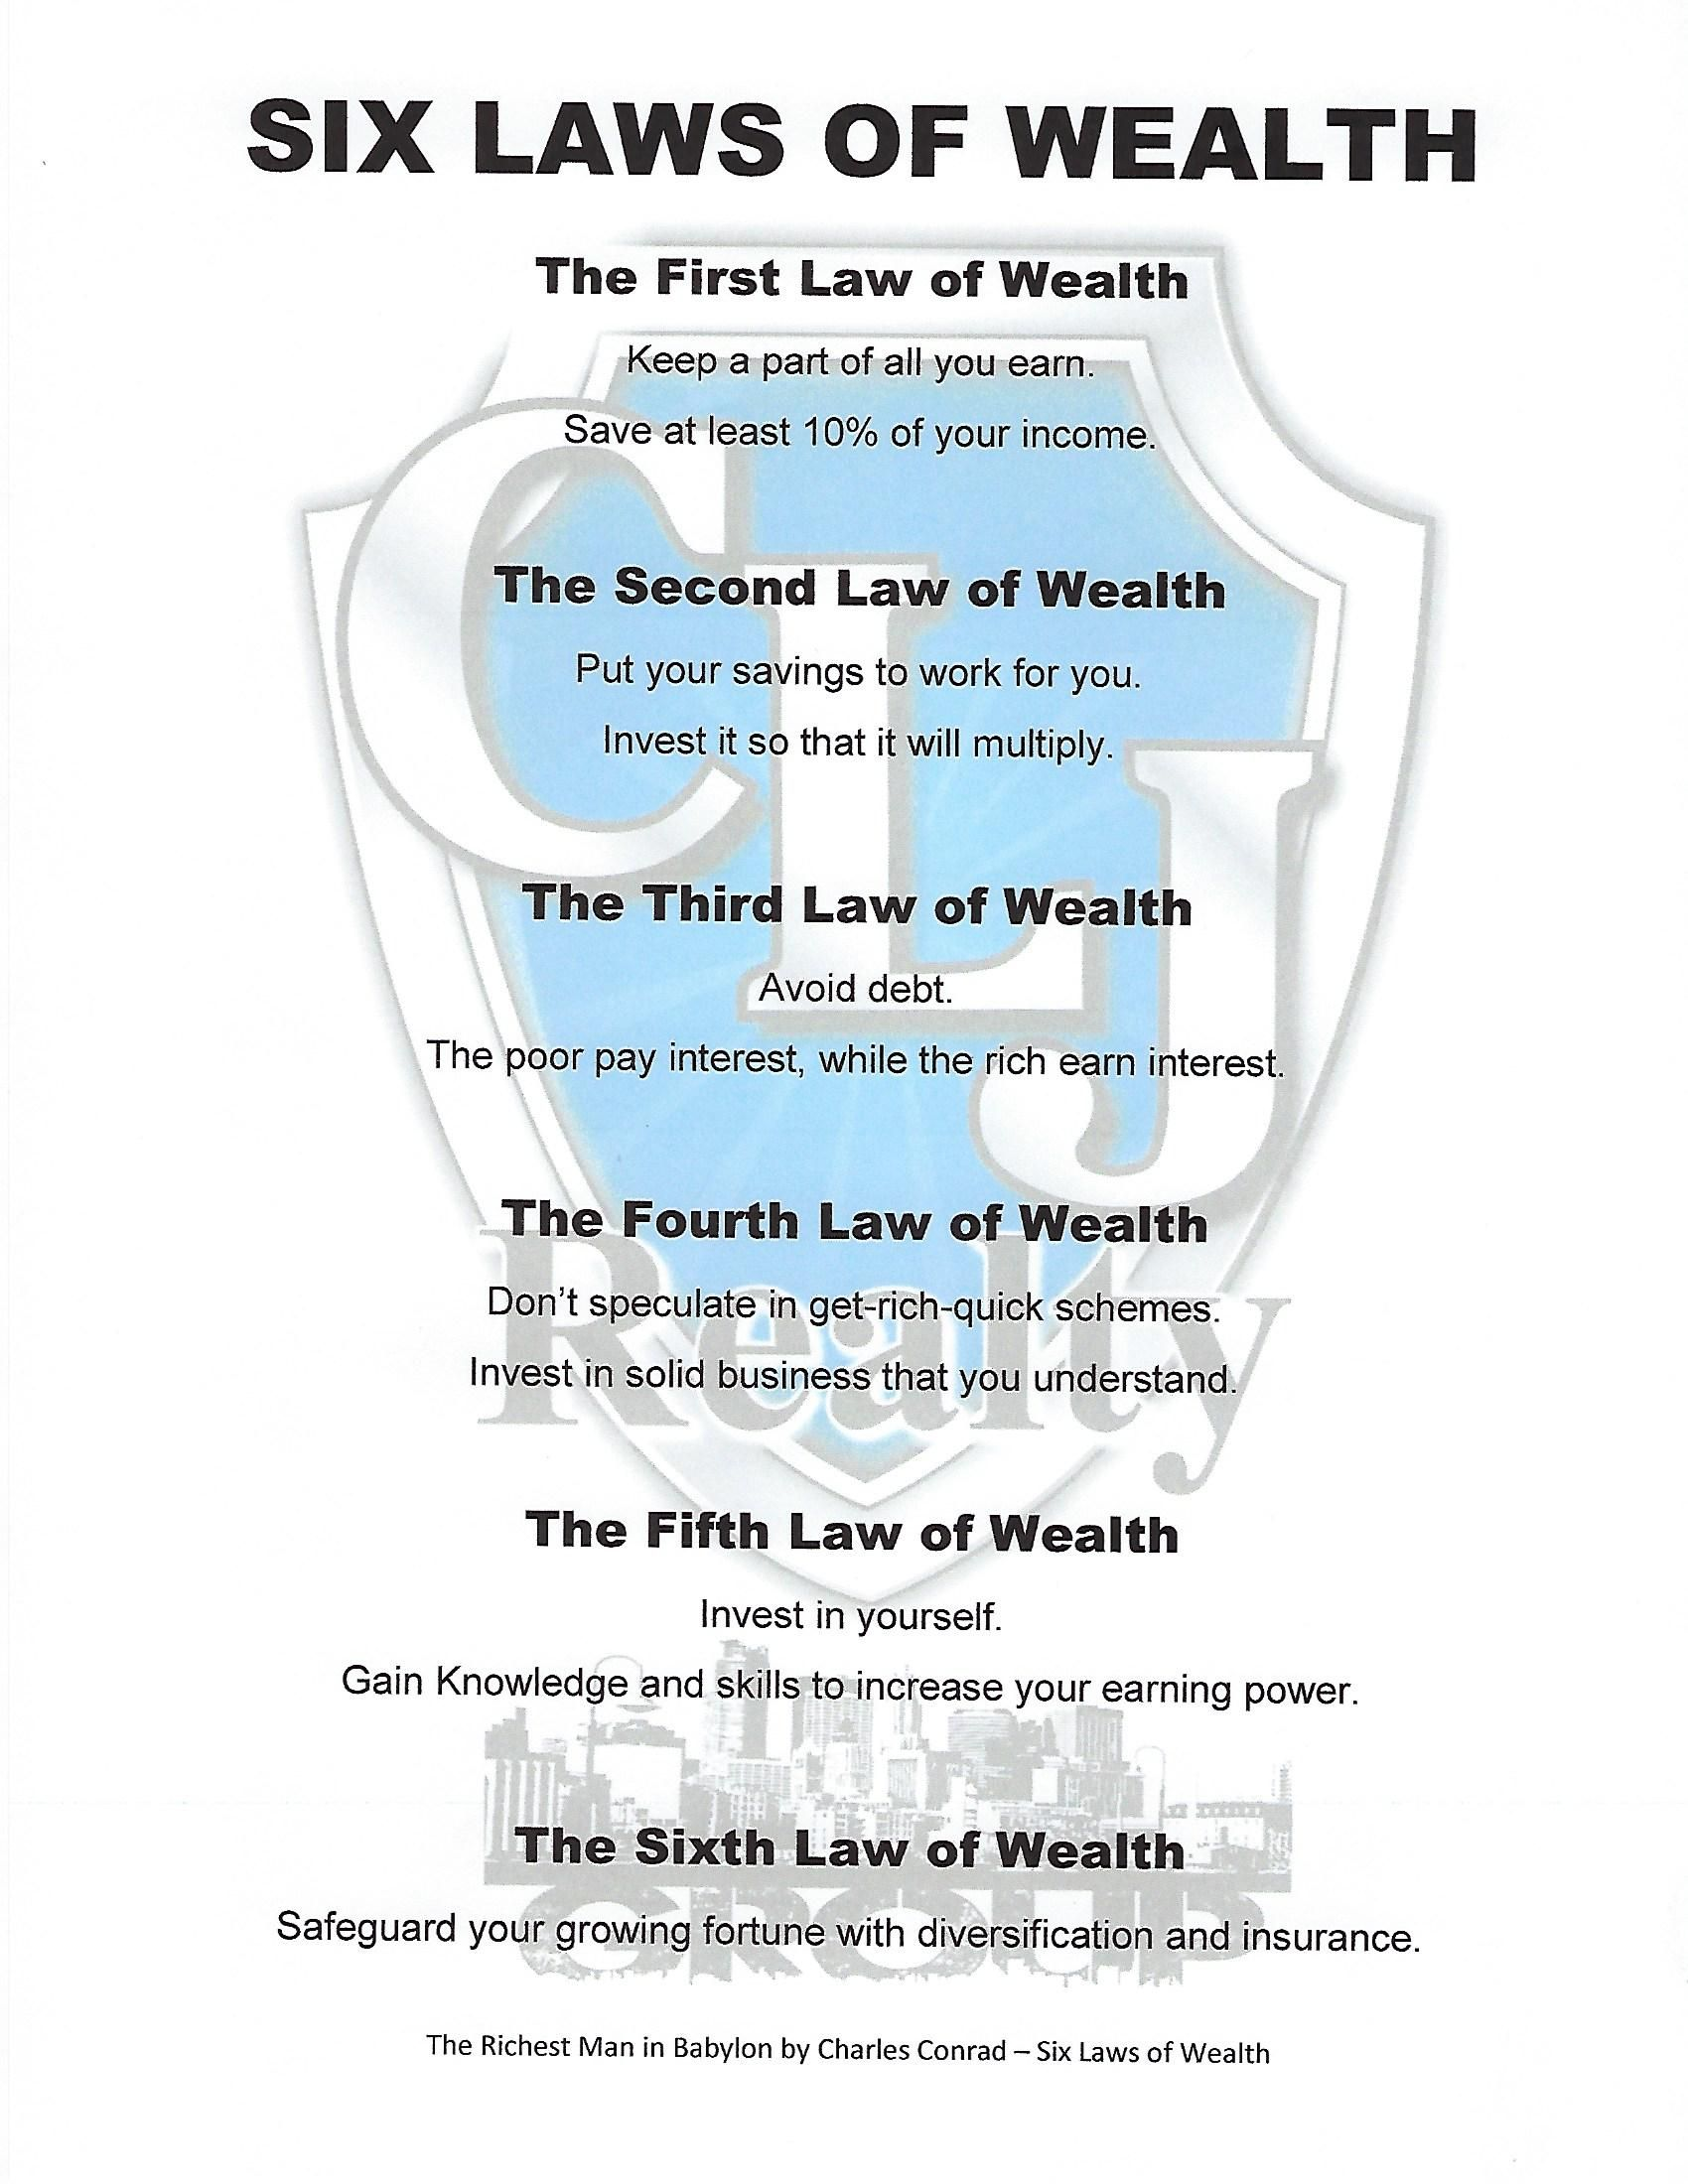 Here S Something To Live By Going Into 2018 The Six Laws Of Wealth From The Book The Richest Man Business Motivational Quotes Finances Money Business Money